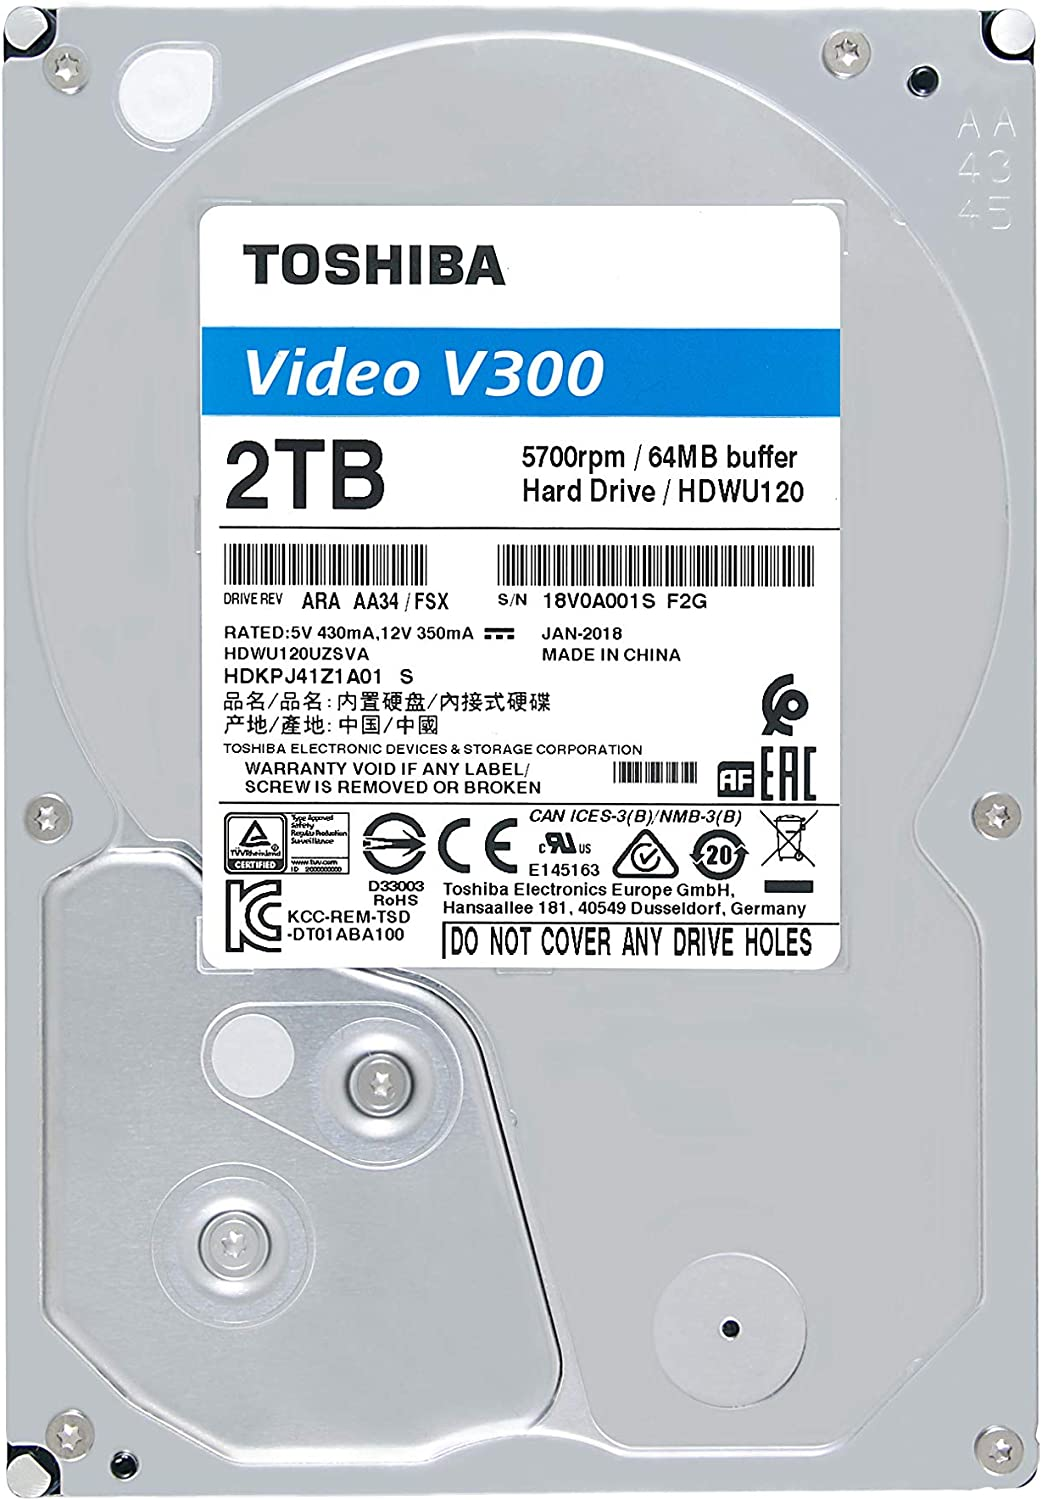 TOSHIBA 2 TB VIDEO SURVEILLANCE